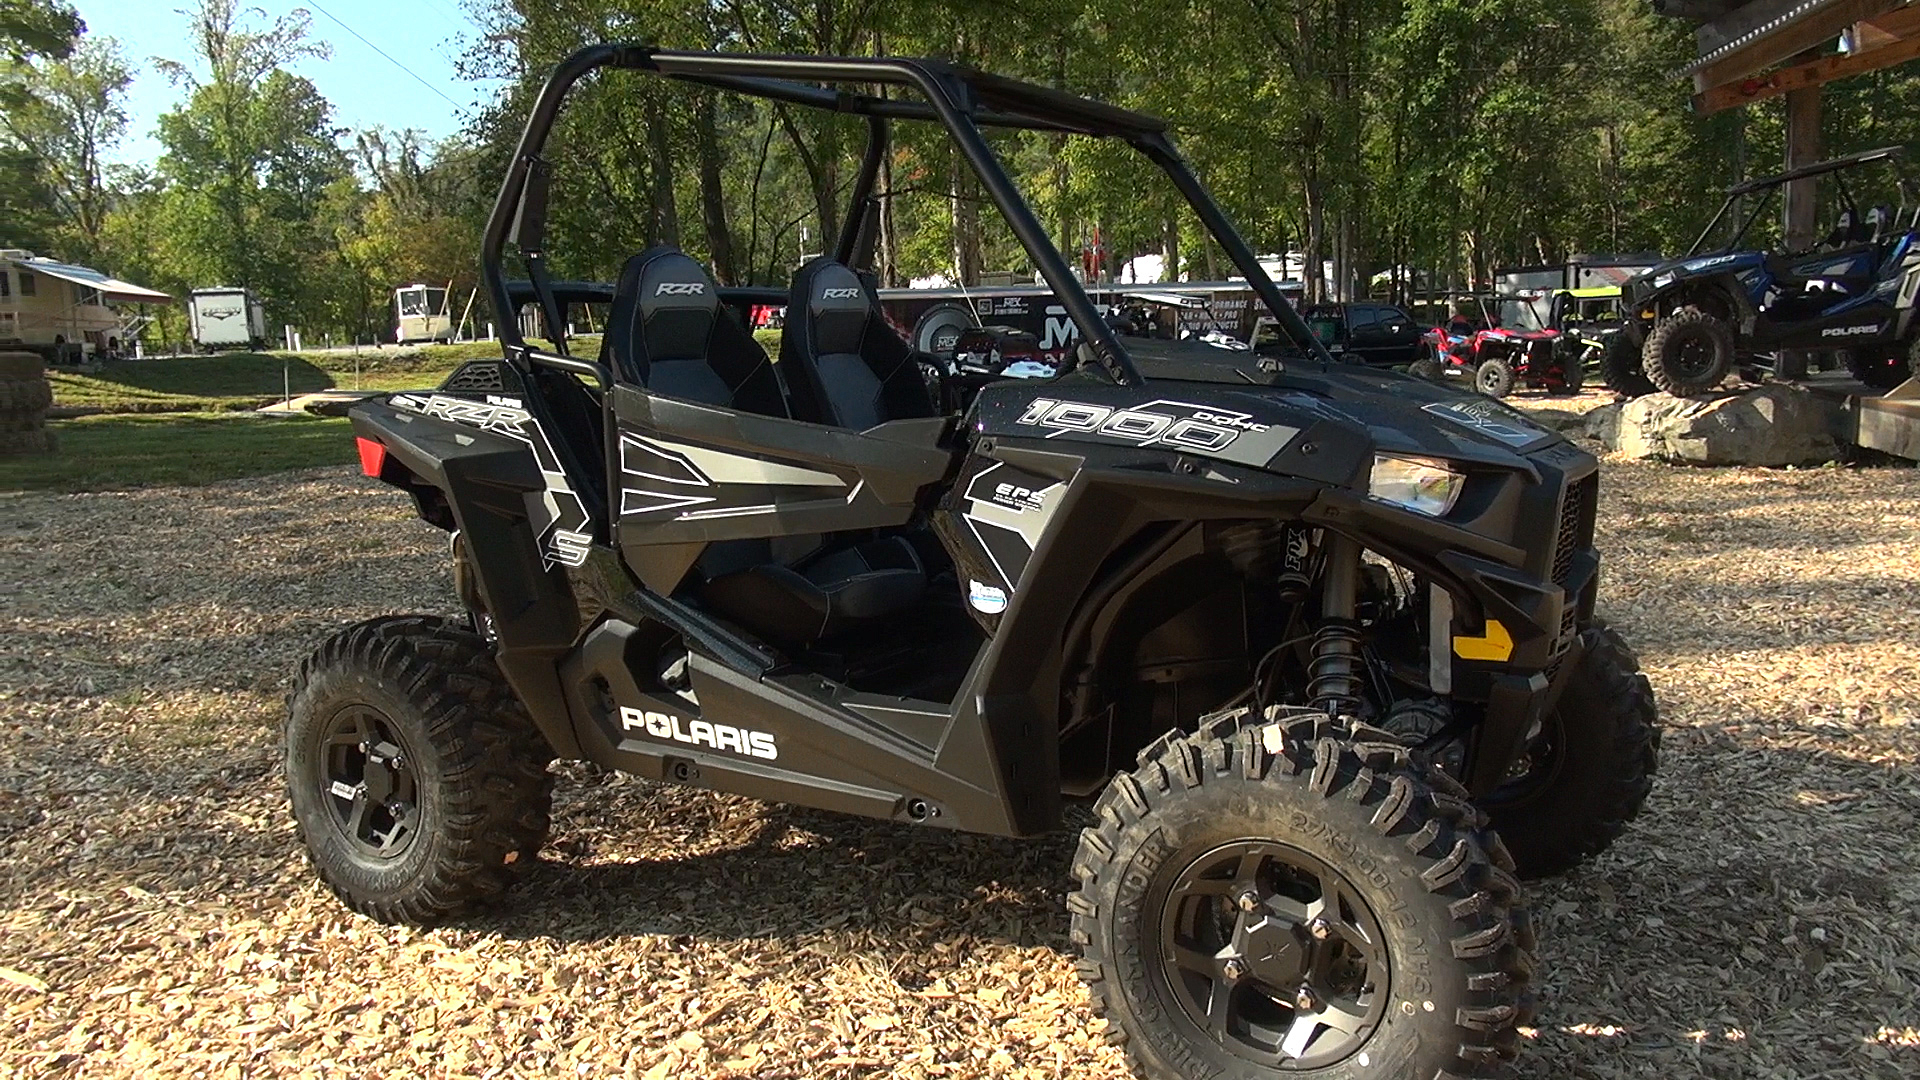 2016 Polaris Rzr S 1000 First Test Right Front